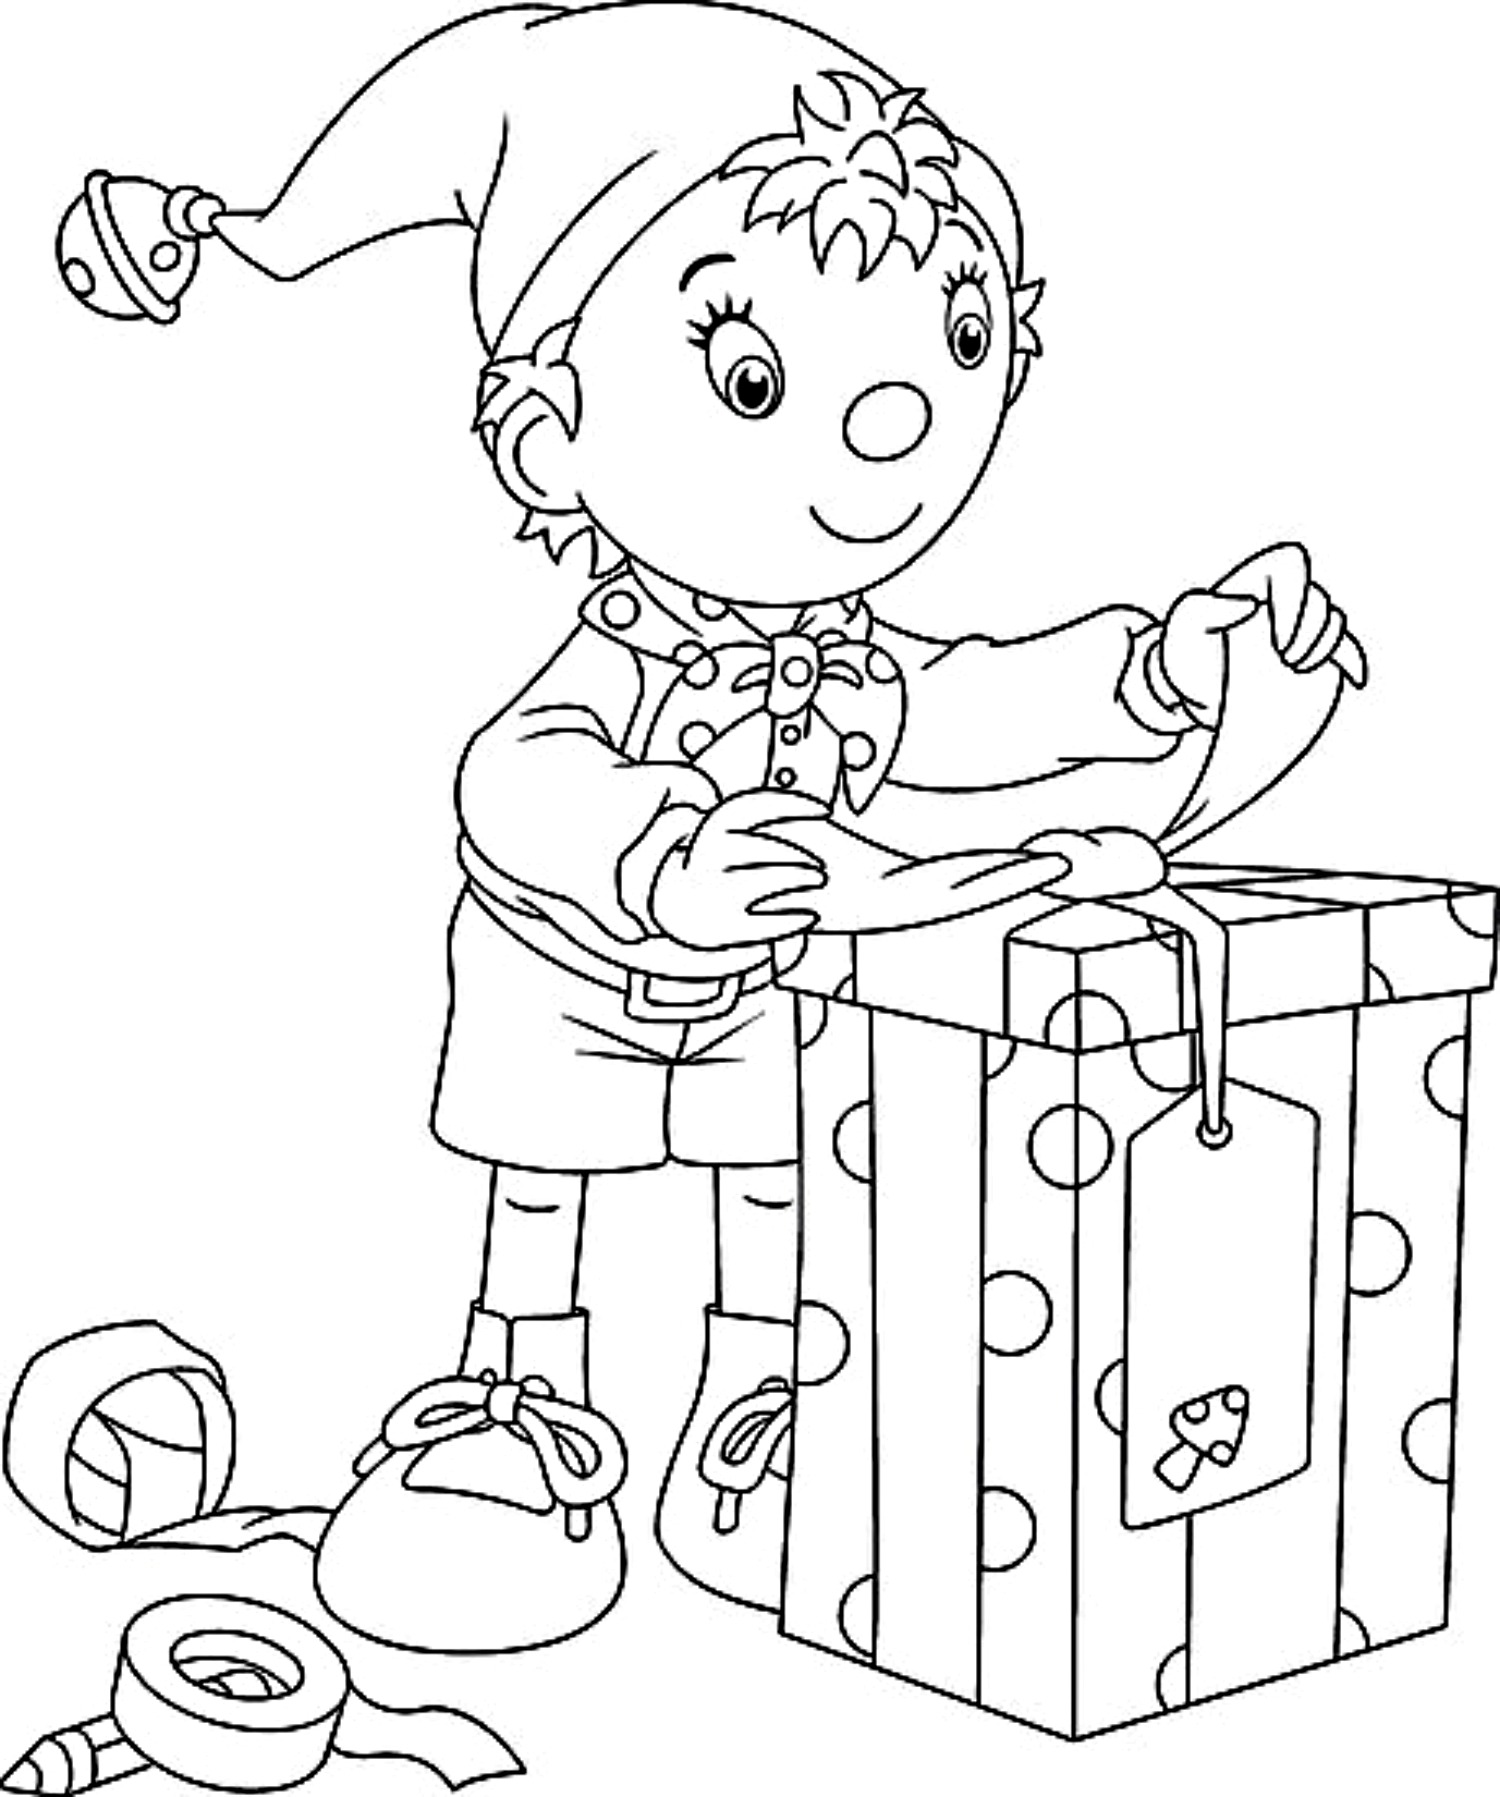 1500x1797 Free Printable Kindergarten Coloring Sheets Color Bros